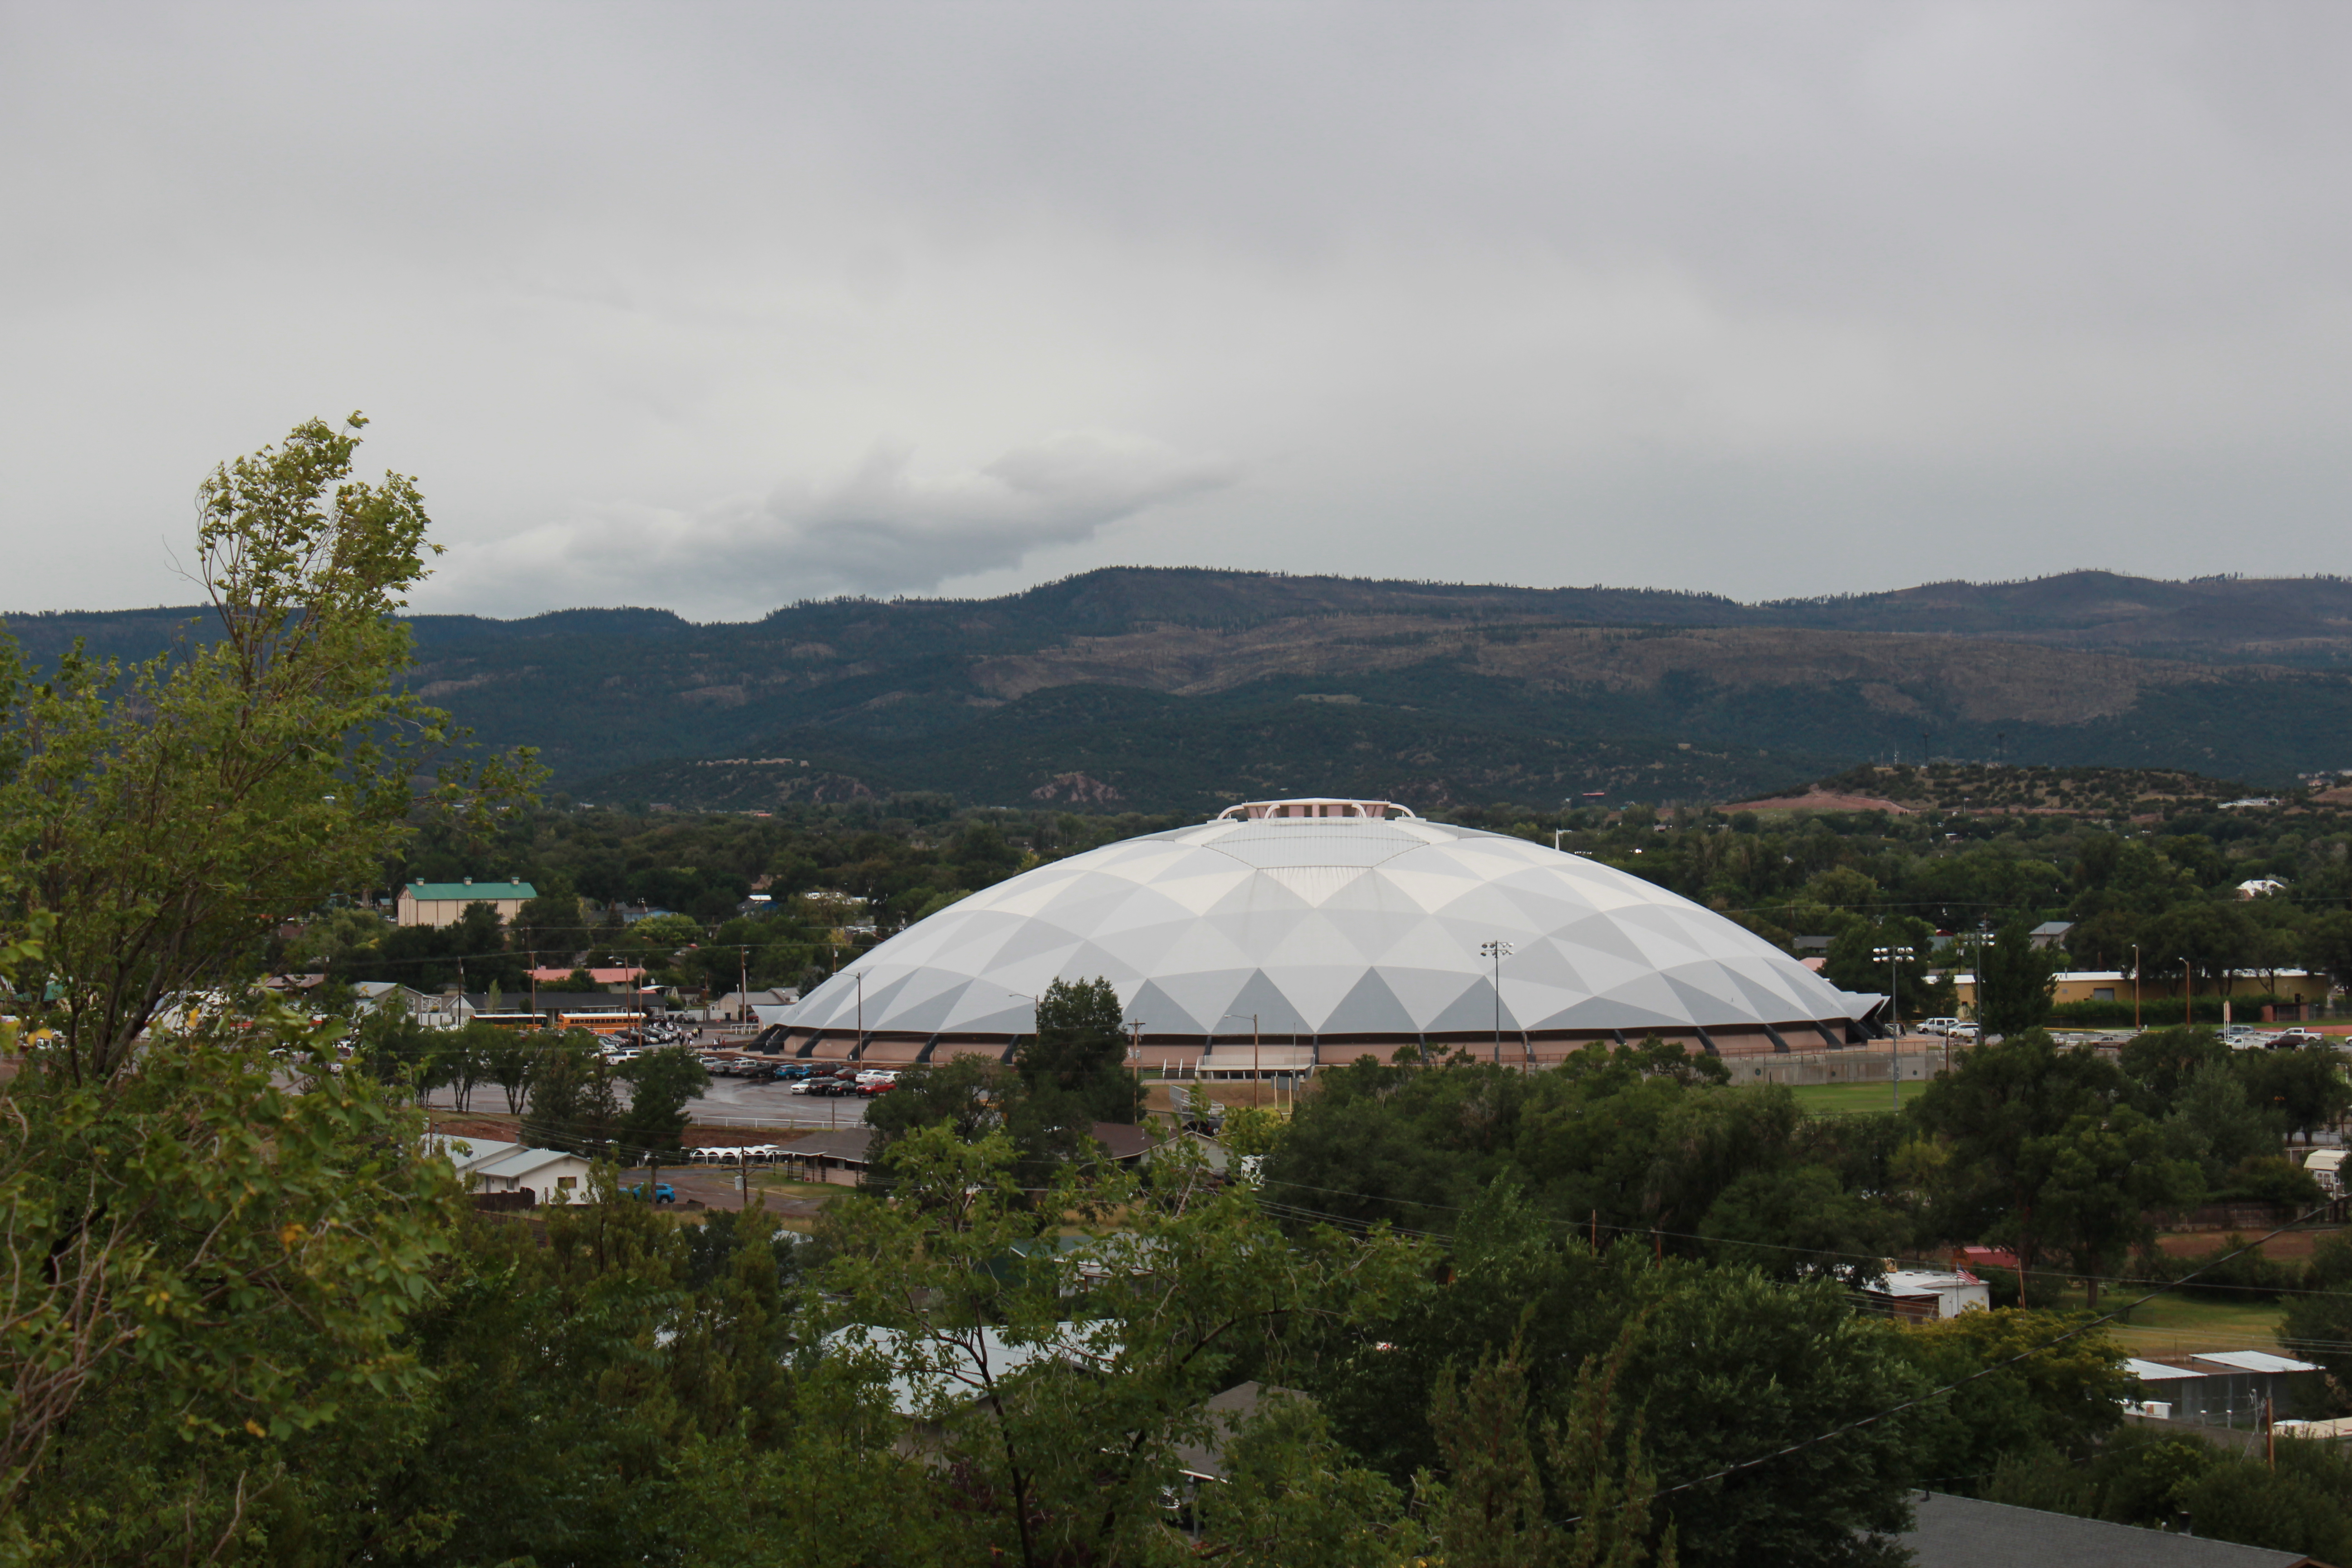 A seven-stake devotional of The Church of Jesus Christ of Latter-day Saints was held at the Round Valley Dome, a one-of-a-kind high school sports stadium, on Sept. 14, 2019.